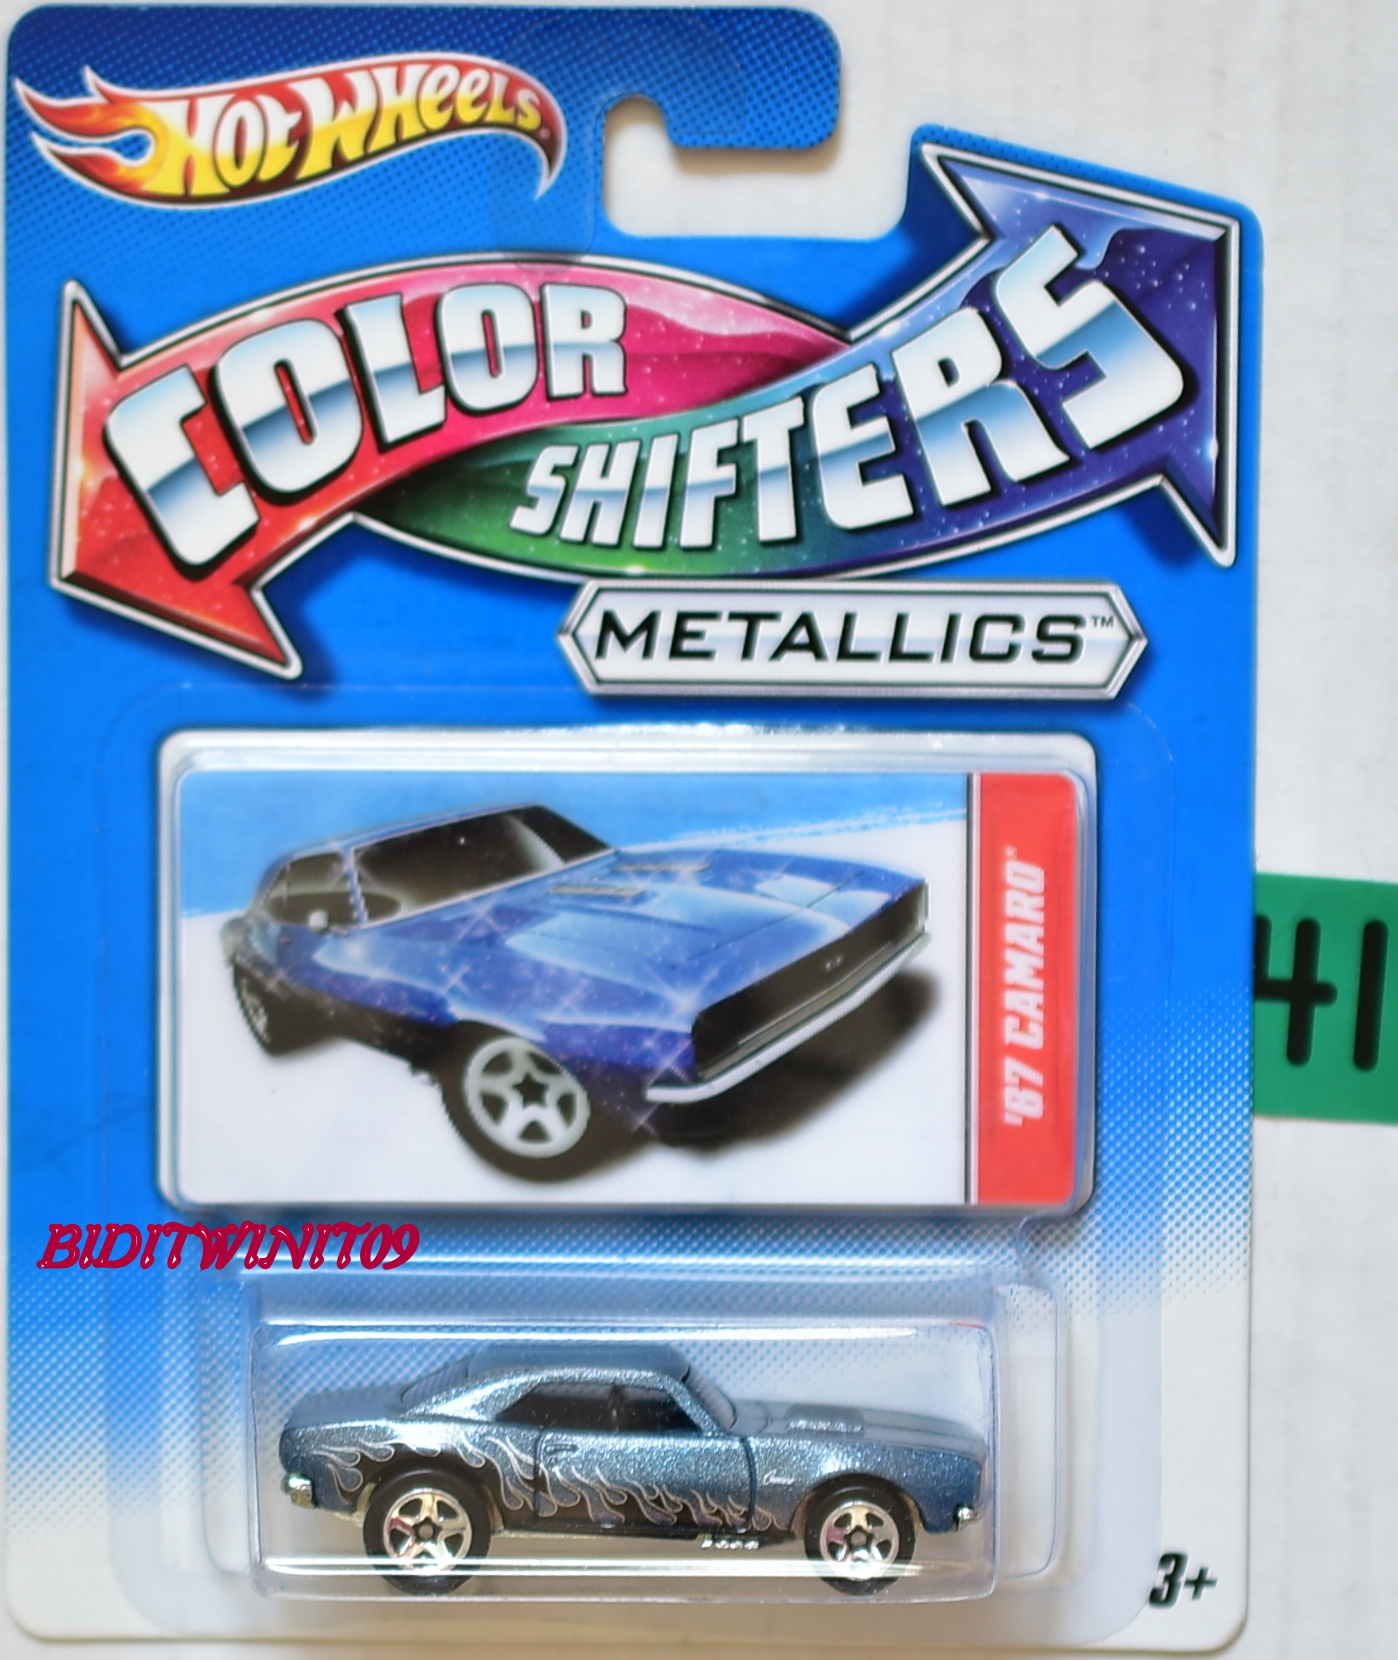 HOT WHEELS COLOR SHIFTERS METALLICS 2011 '67 CAMARO E+